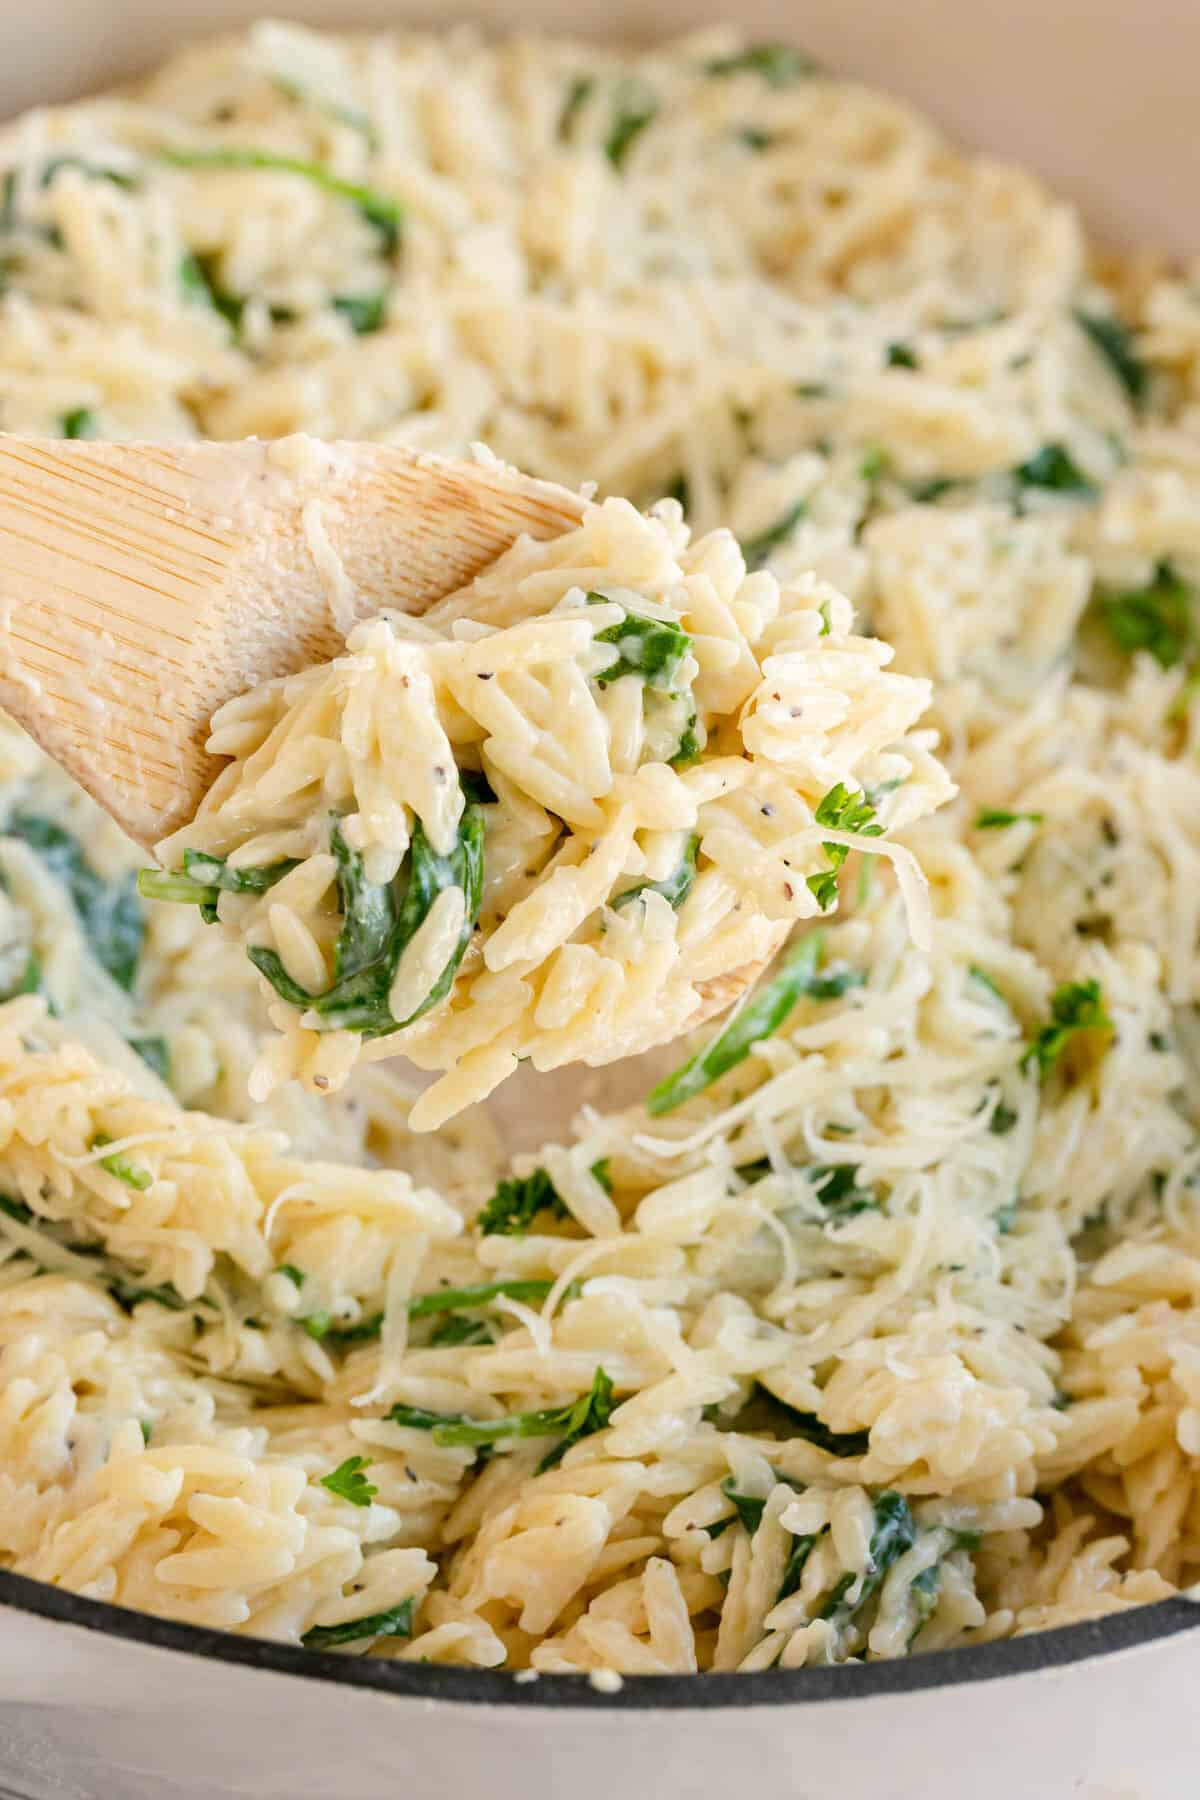 Spinach orzo in a skillet with a wooden spoon